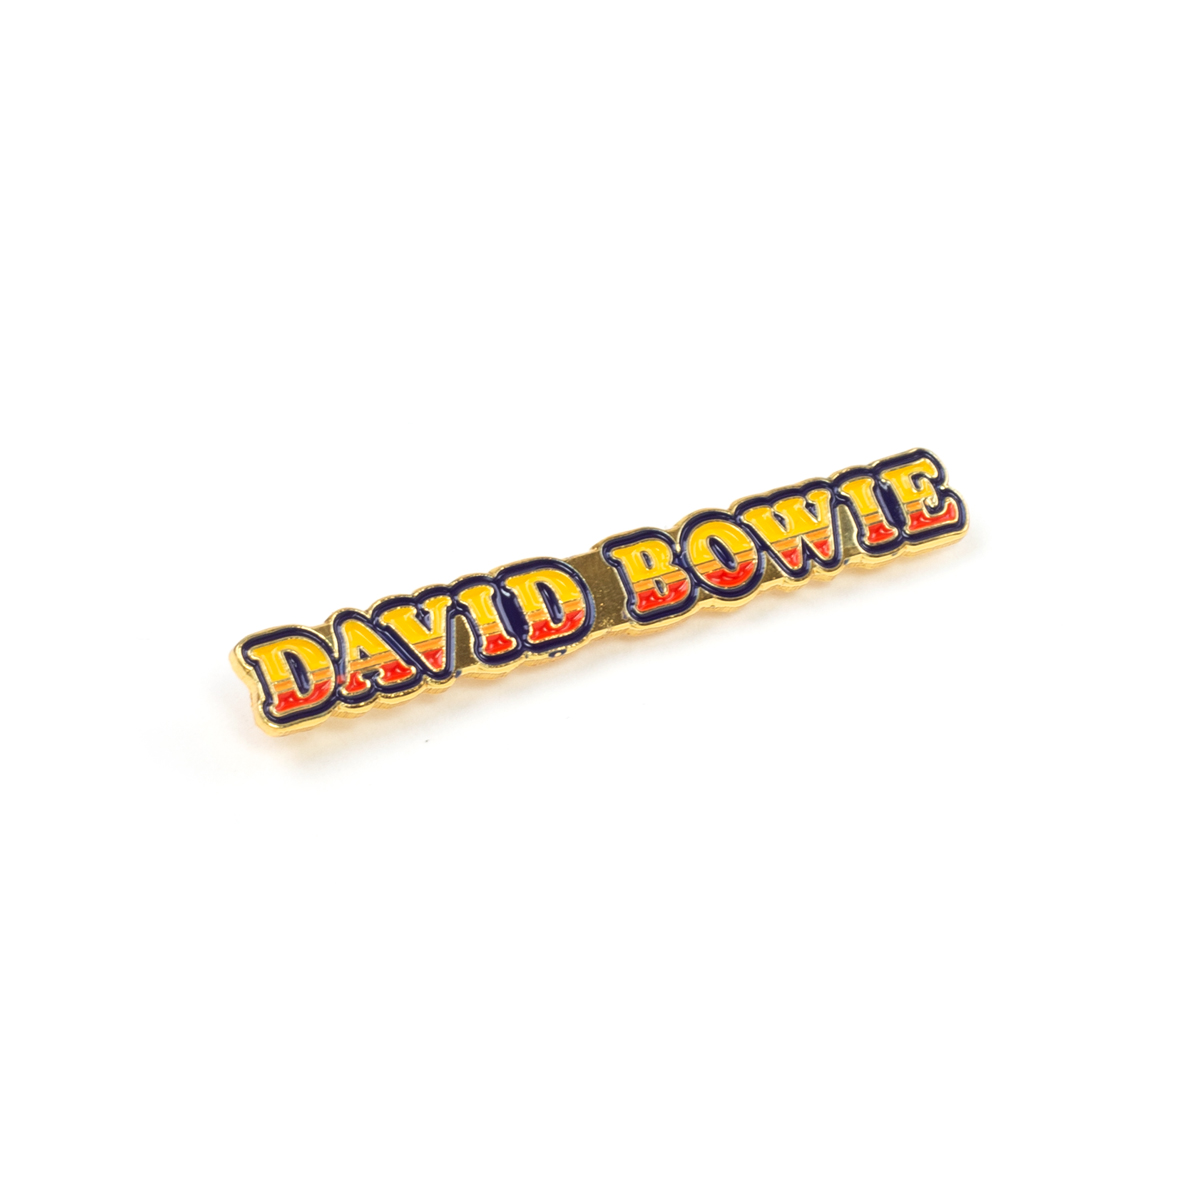 David Bowie Ziggy Stardust Logo Pin